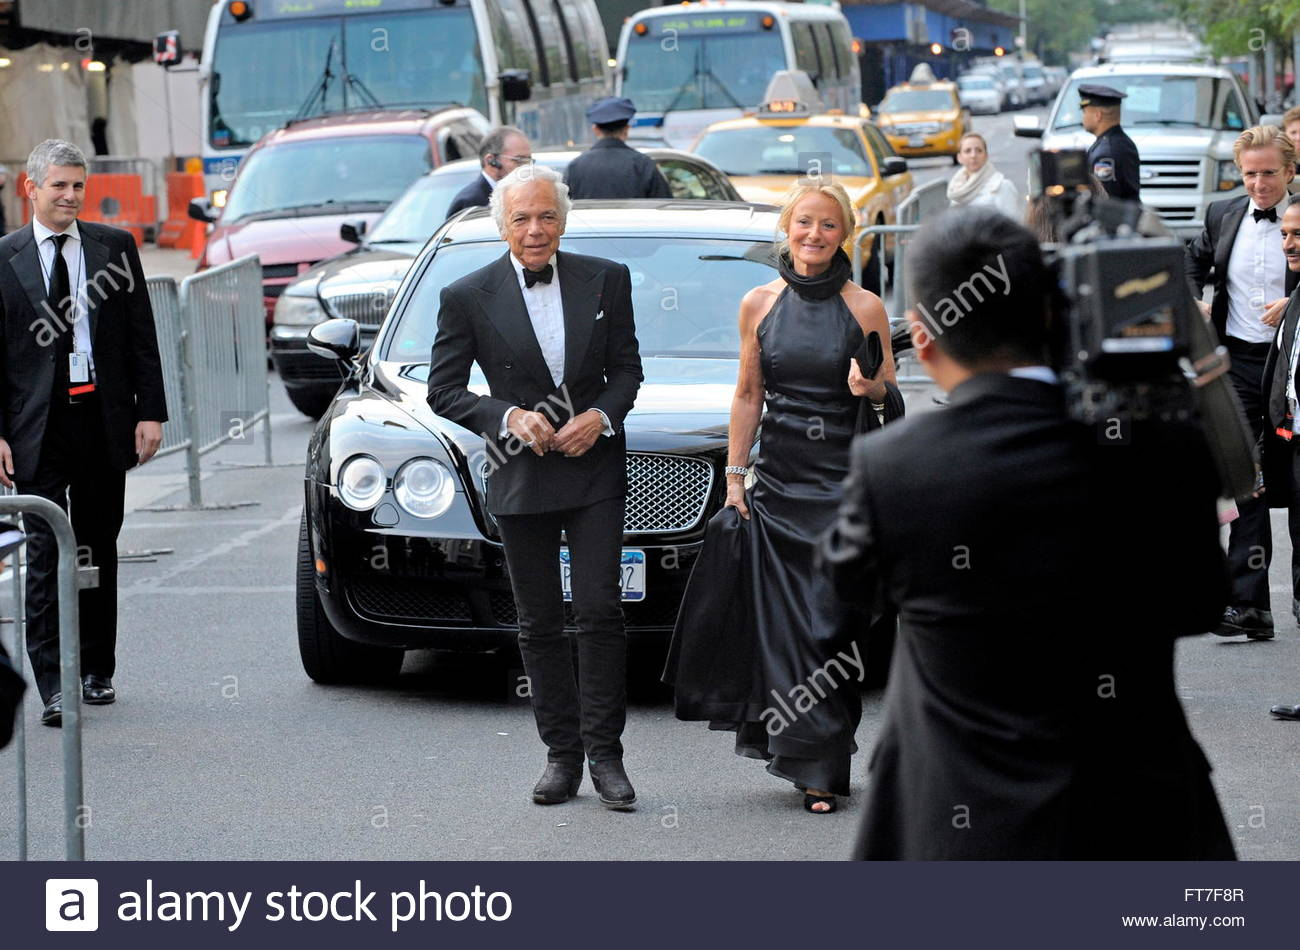 Stock Photo - US Fashion Designer Ralph Lauren (C) and his wife Ricky (R) arrive for \u0026#39;An Evening with Ralph Lauren\u0026#39; at Lincoln Center in New York, USA, ...